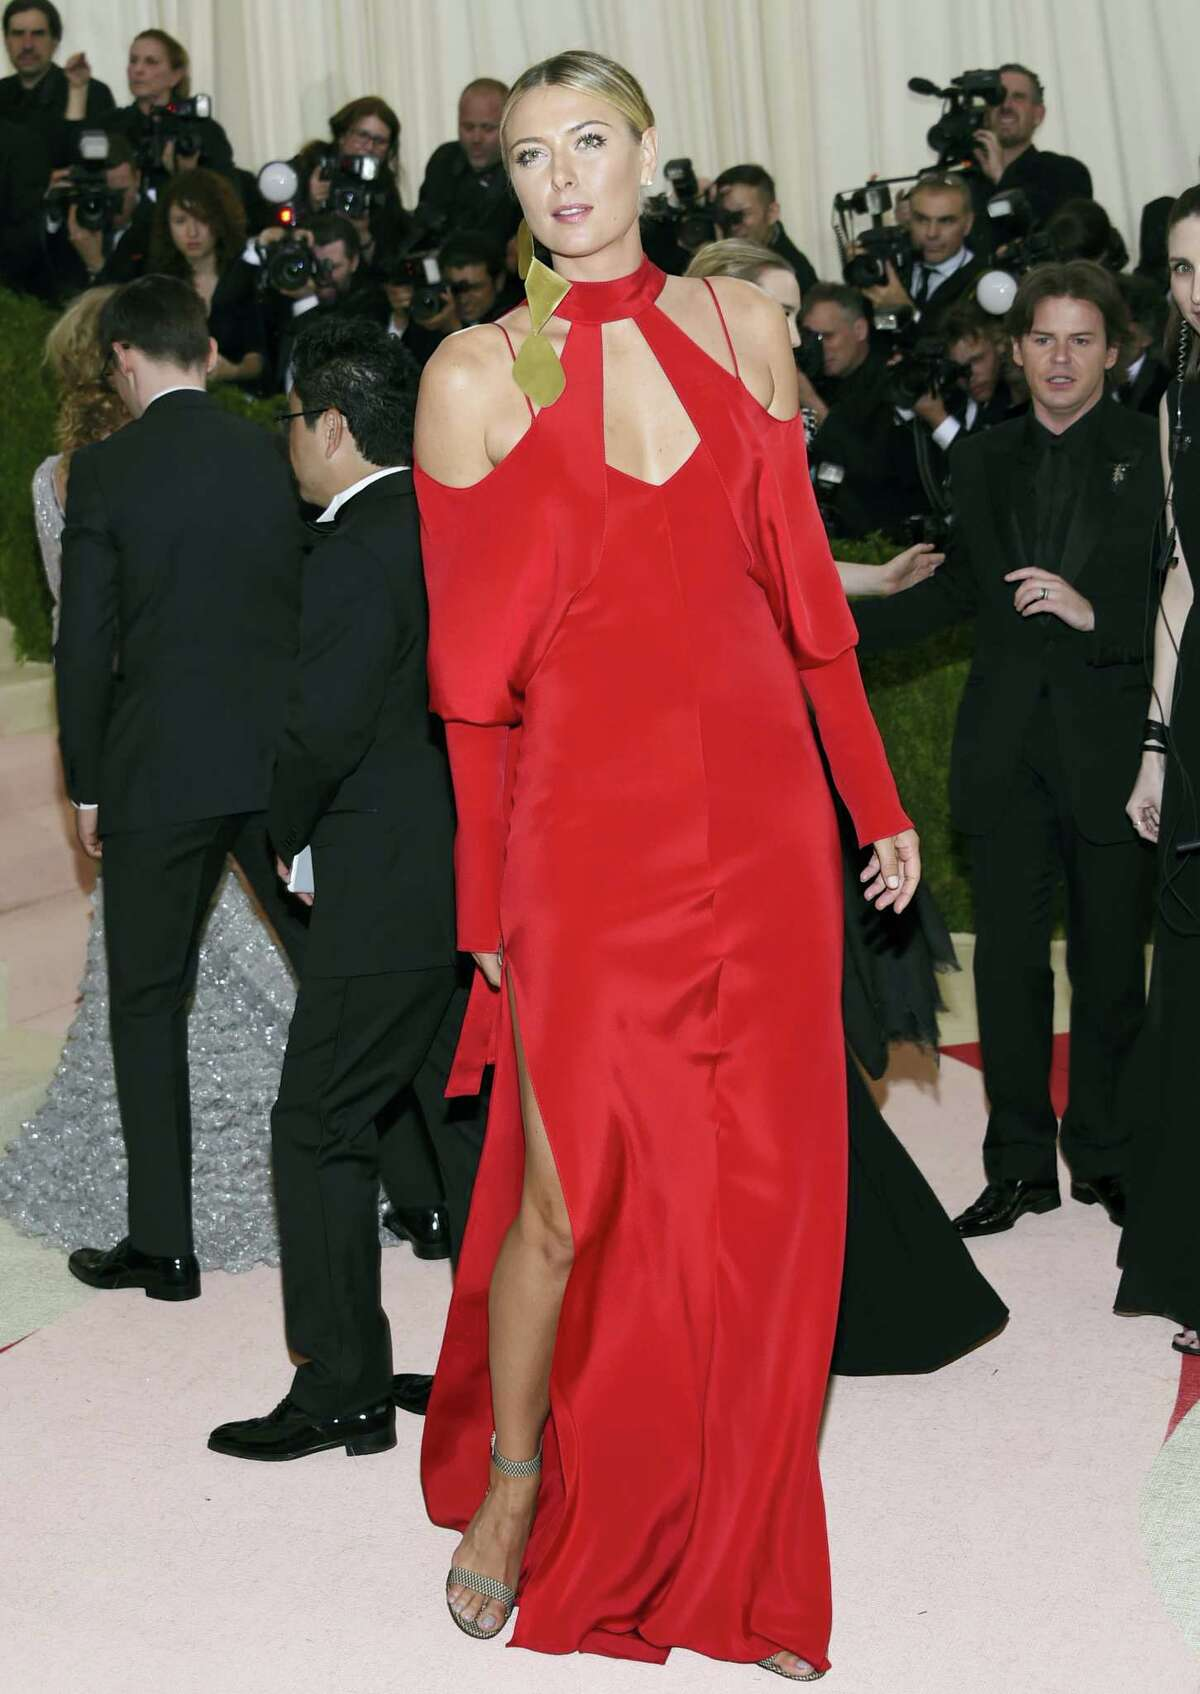 """In this Monday, May 2, 2016 photo, Maria Sharapova arrives at The Metropolitan Museum of Art Costume Institute Benefit Gala, celebrating the opening of """"Manus x Machina: Fashion in an Age of Technology"""" in New York. Sharapova has been suspended for two years by the International Tennis Federation for testing positive for meldonium at the Australian Open."""